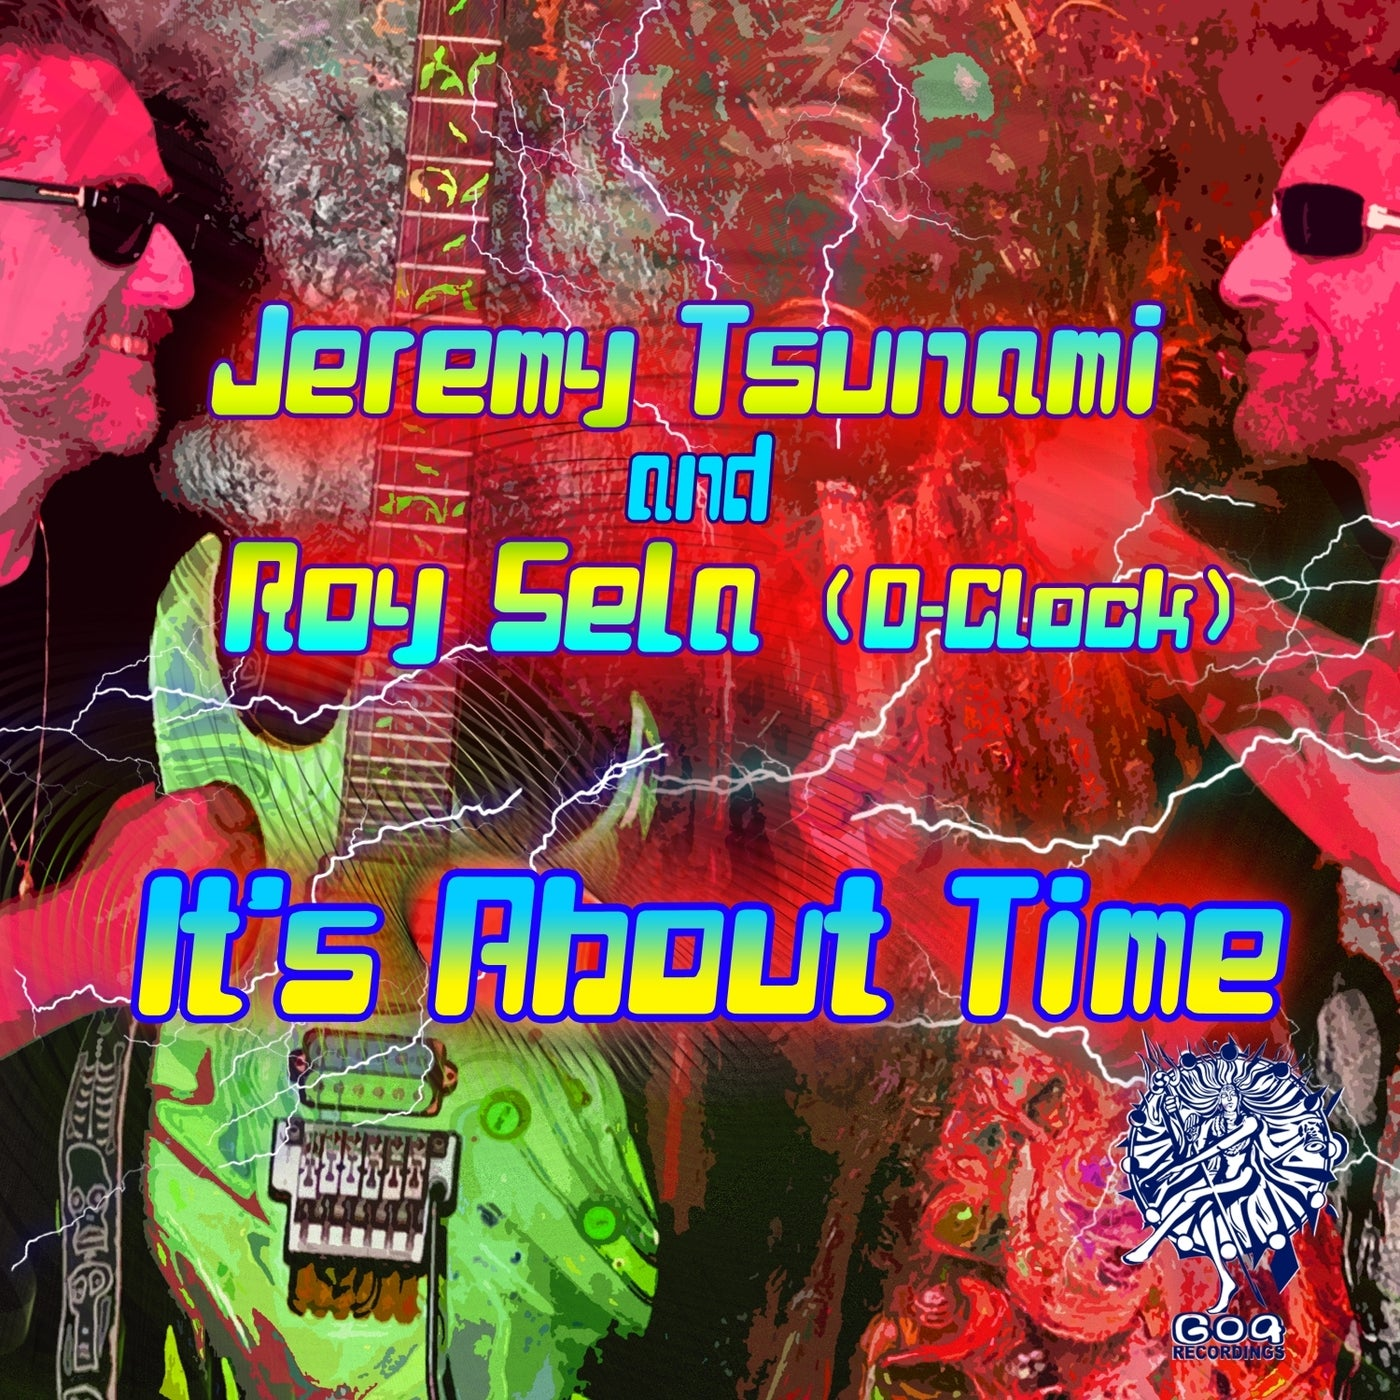 It's About Time (Original Mix)